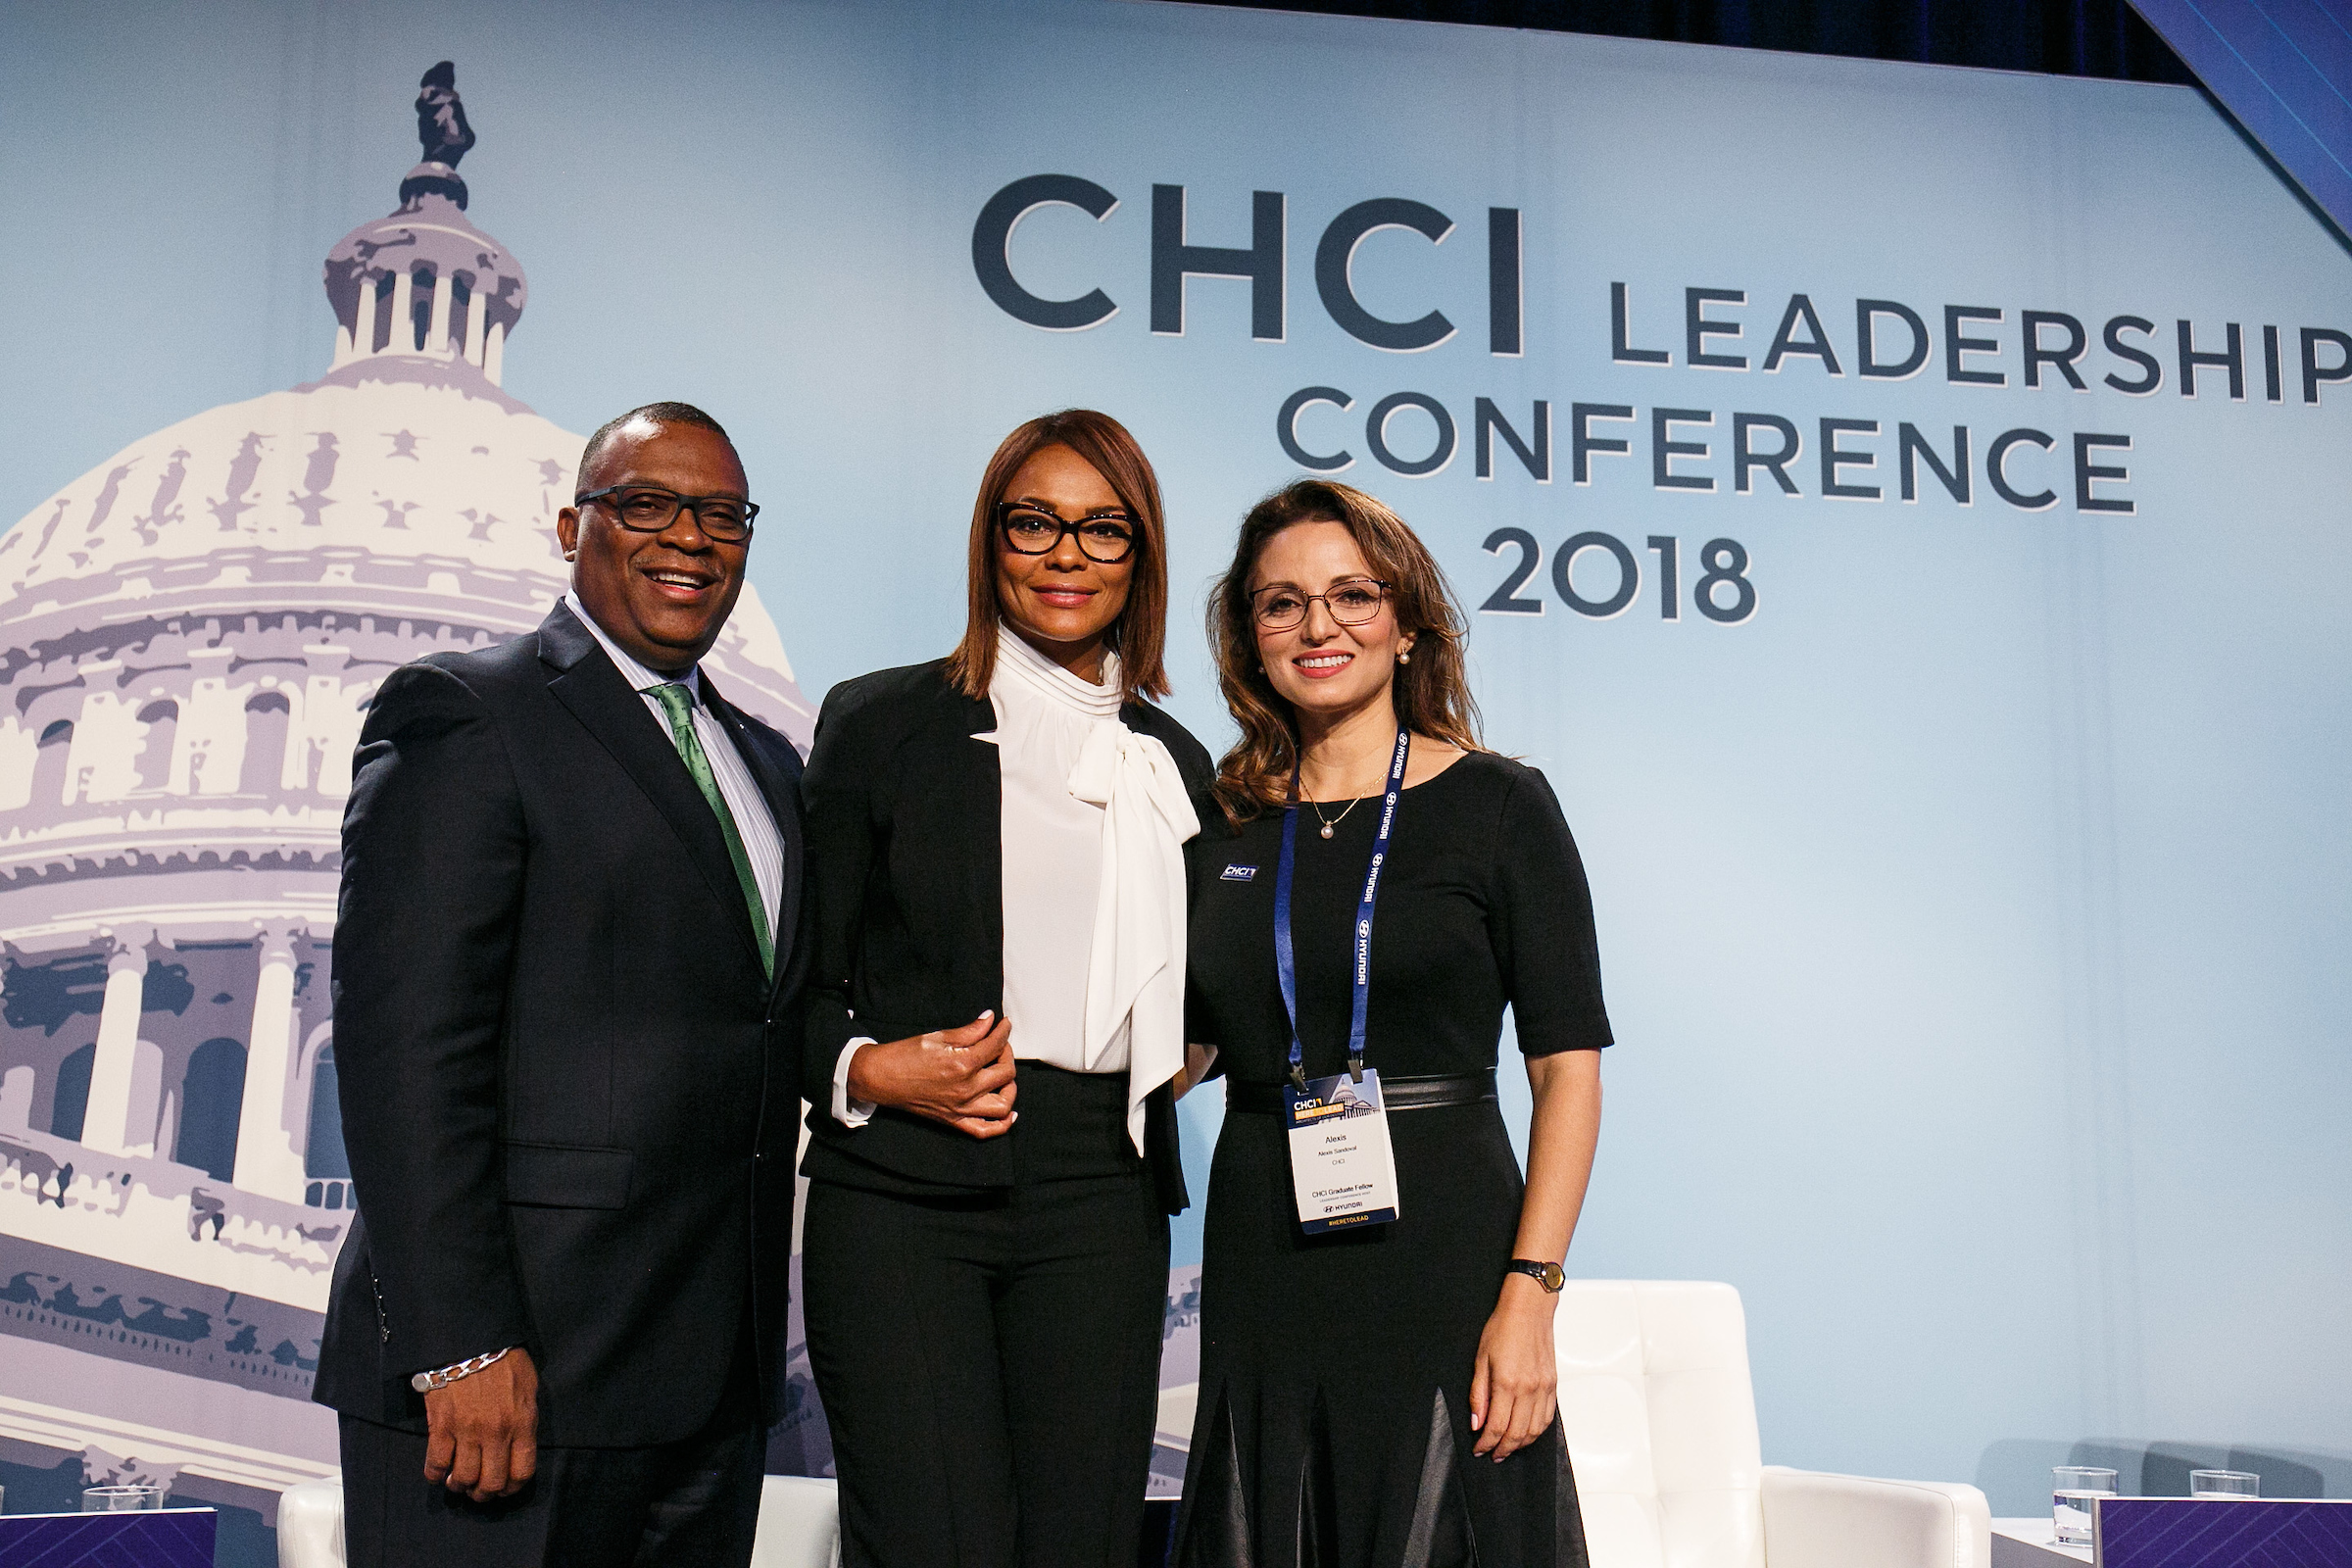 CHCI Leadership Conference on September 11th, 2018.